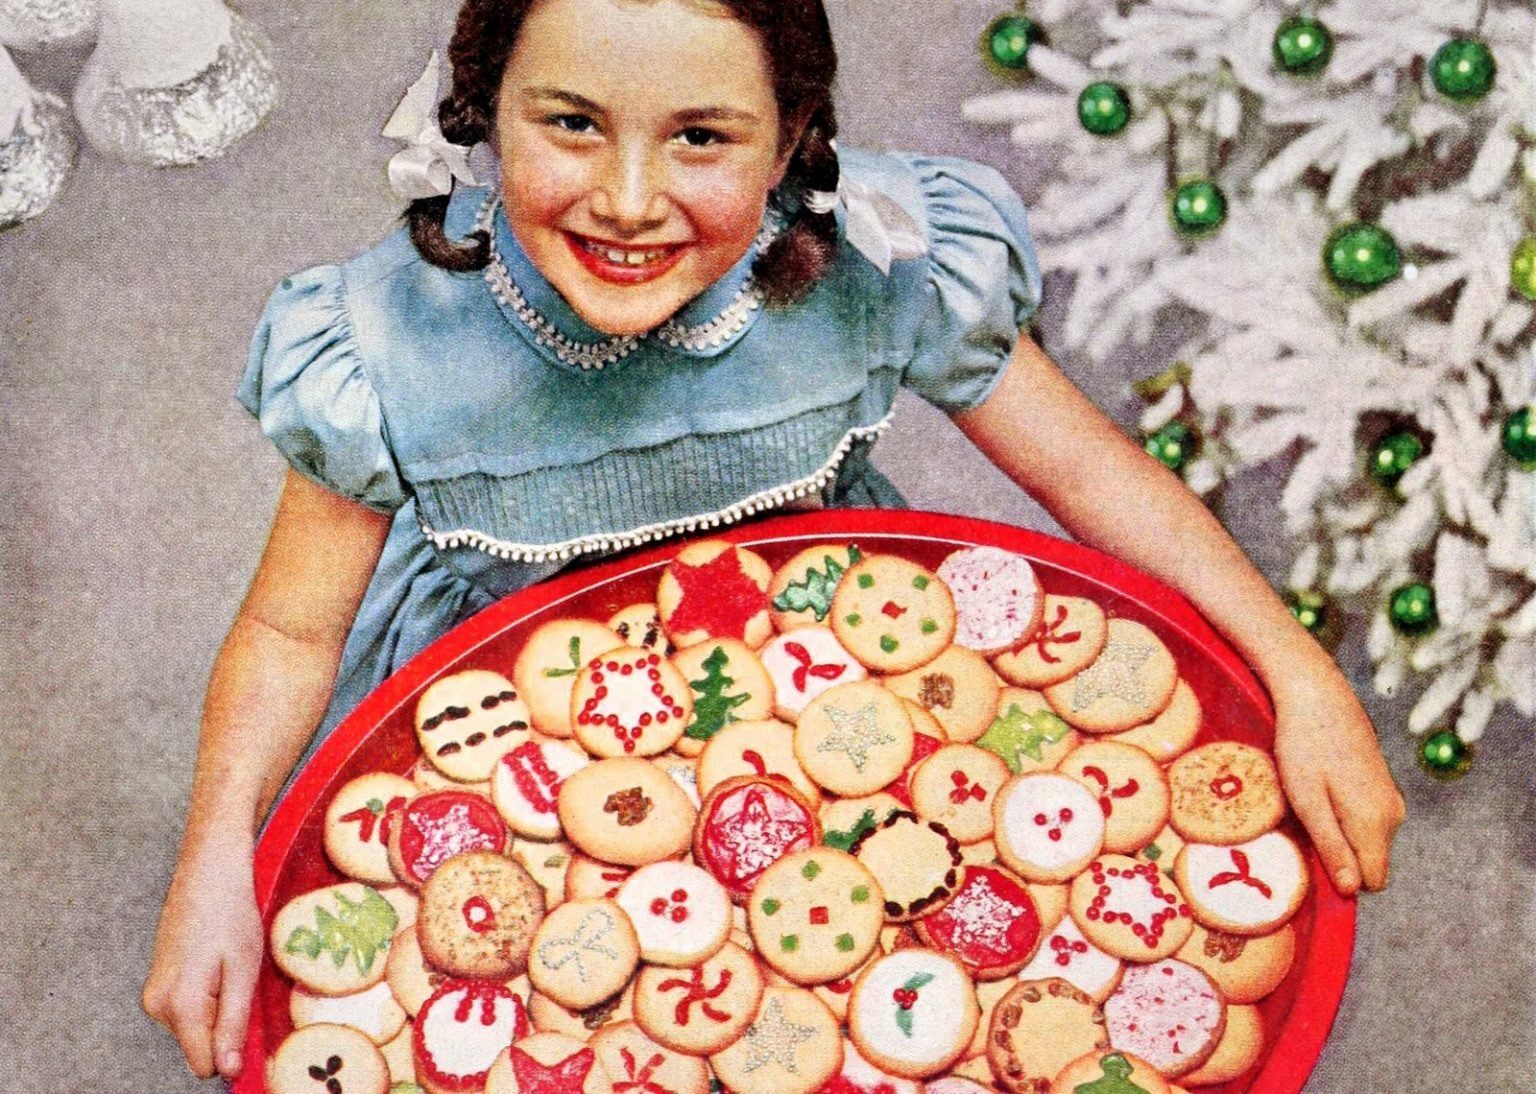 A collection of classic Christmas cookies from the 50s